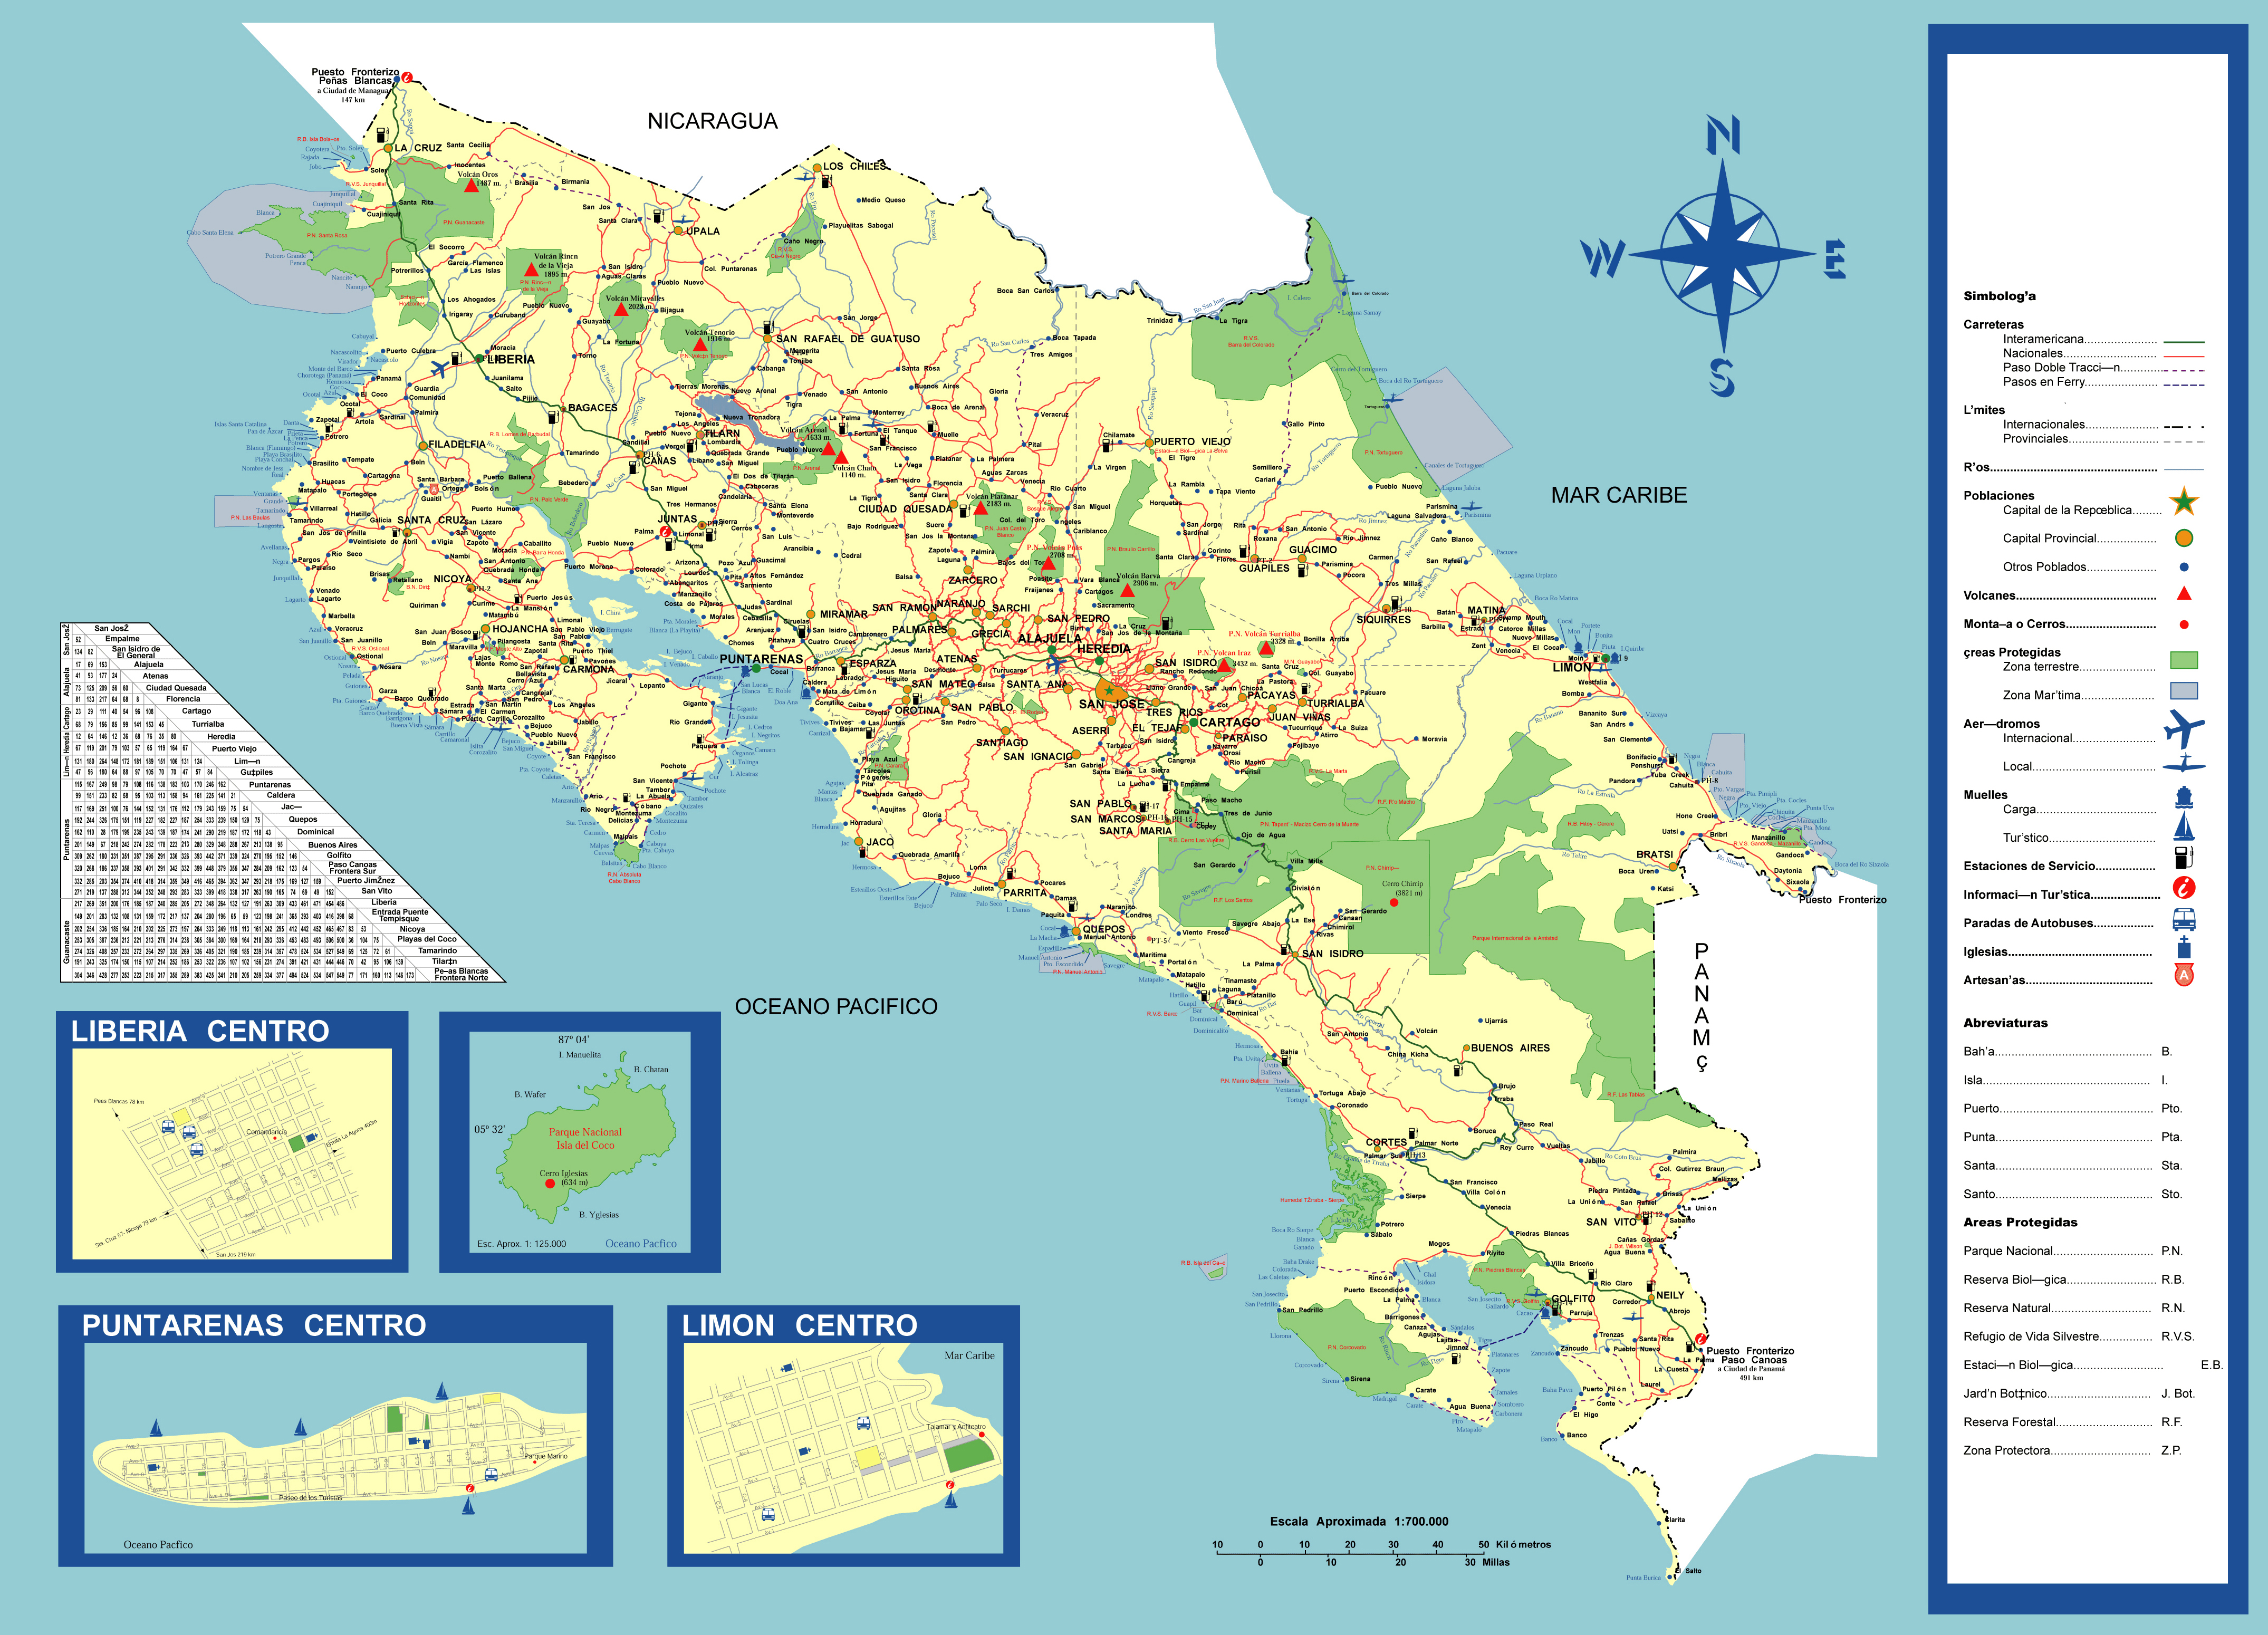 costa rica travel map Large Detailed Travel Map Of Costa Rica Costa Rica North America Mapsland Maps Of The World costa rica travel map